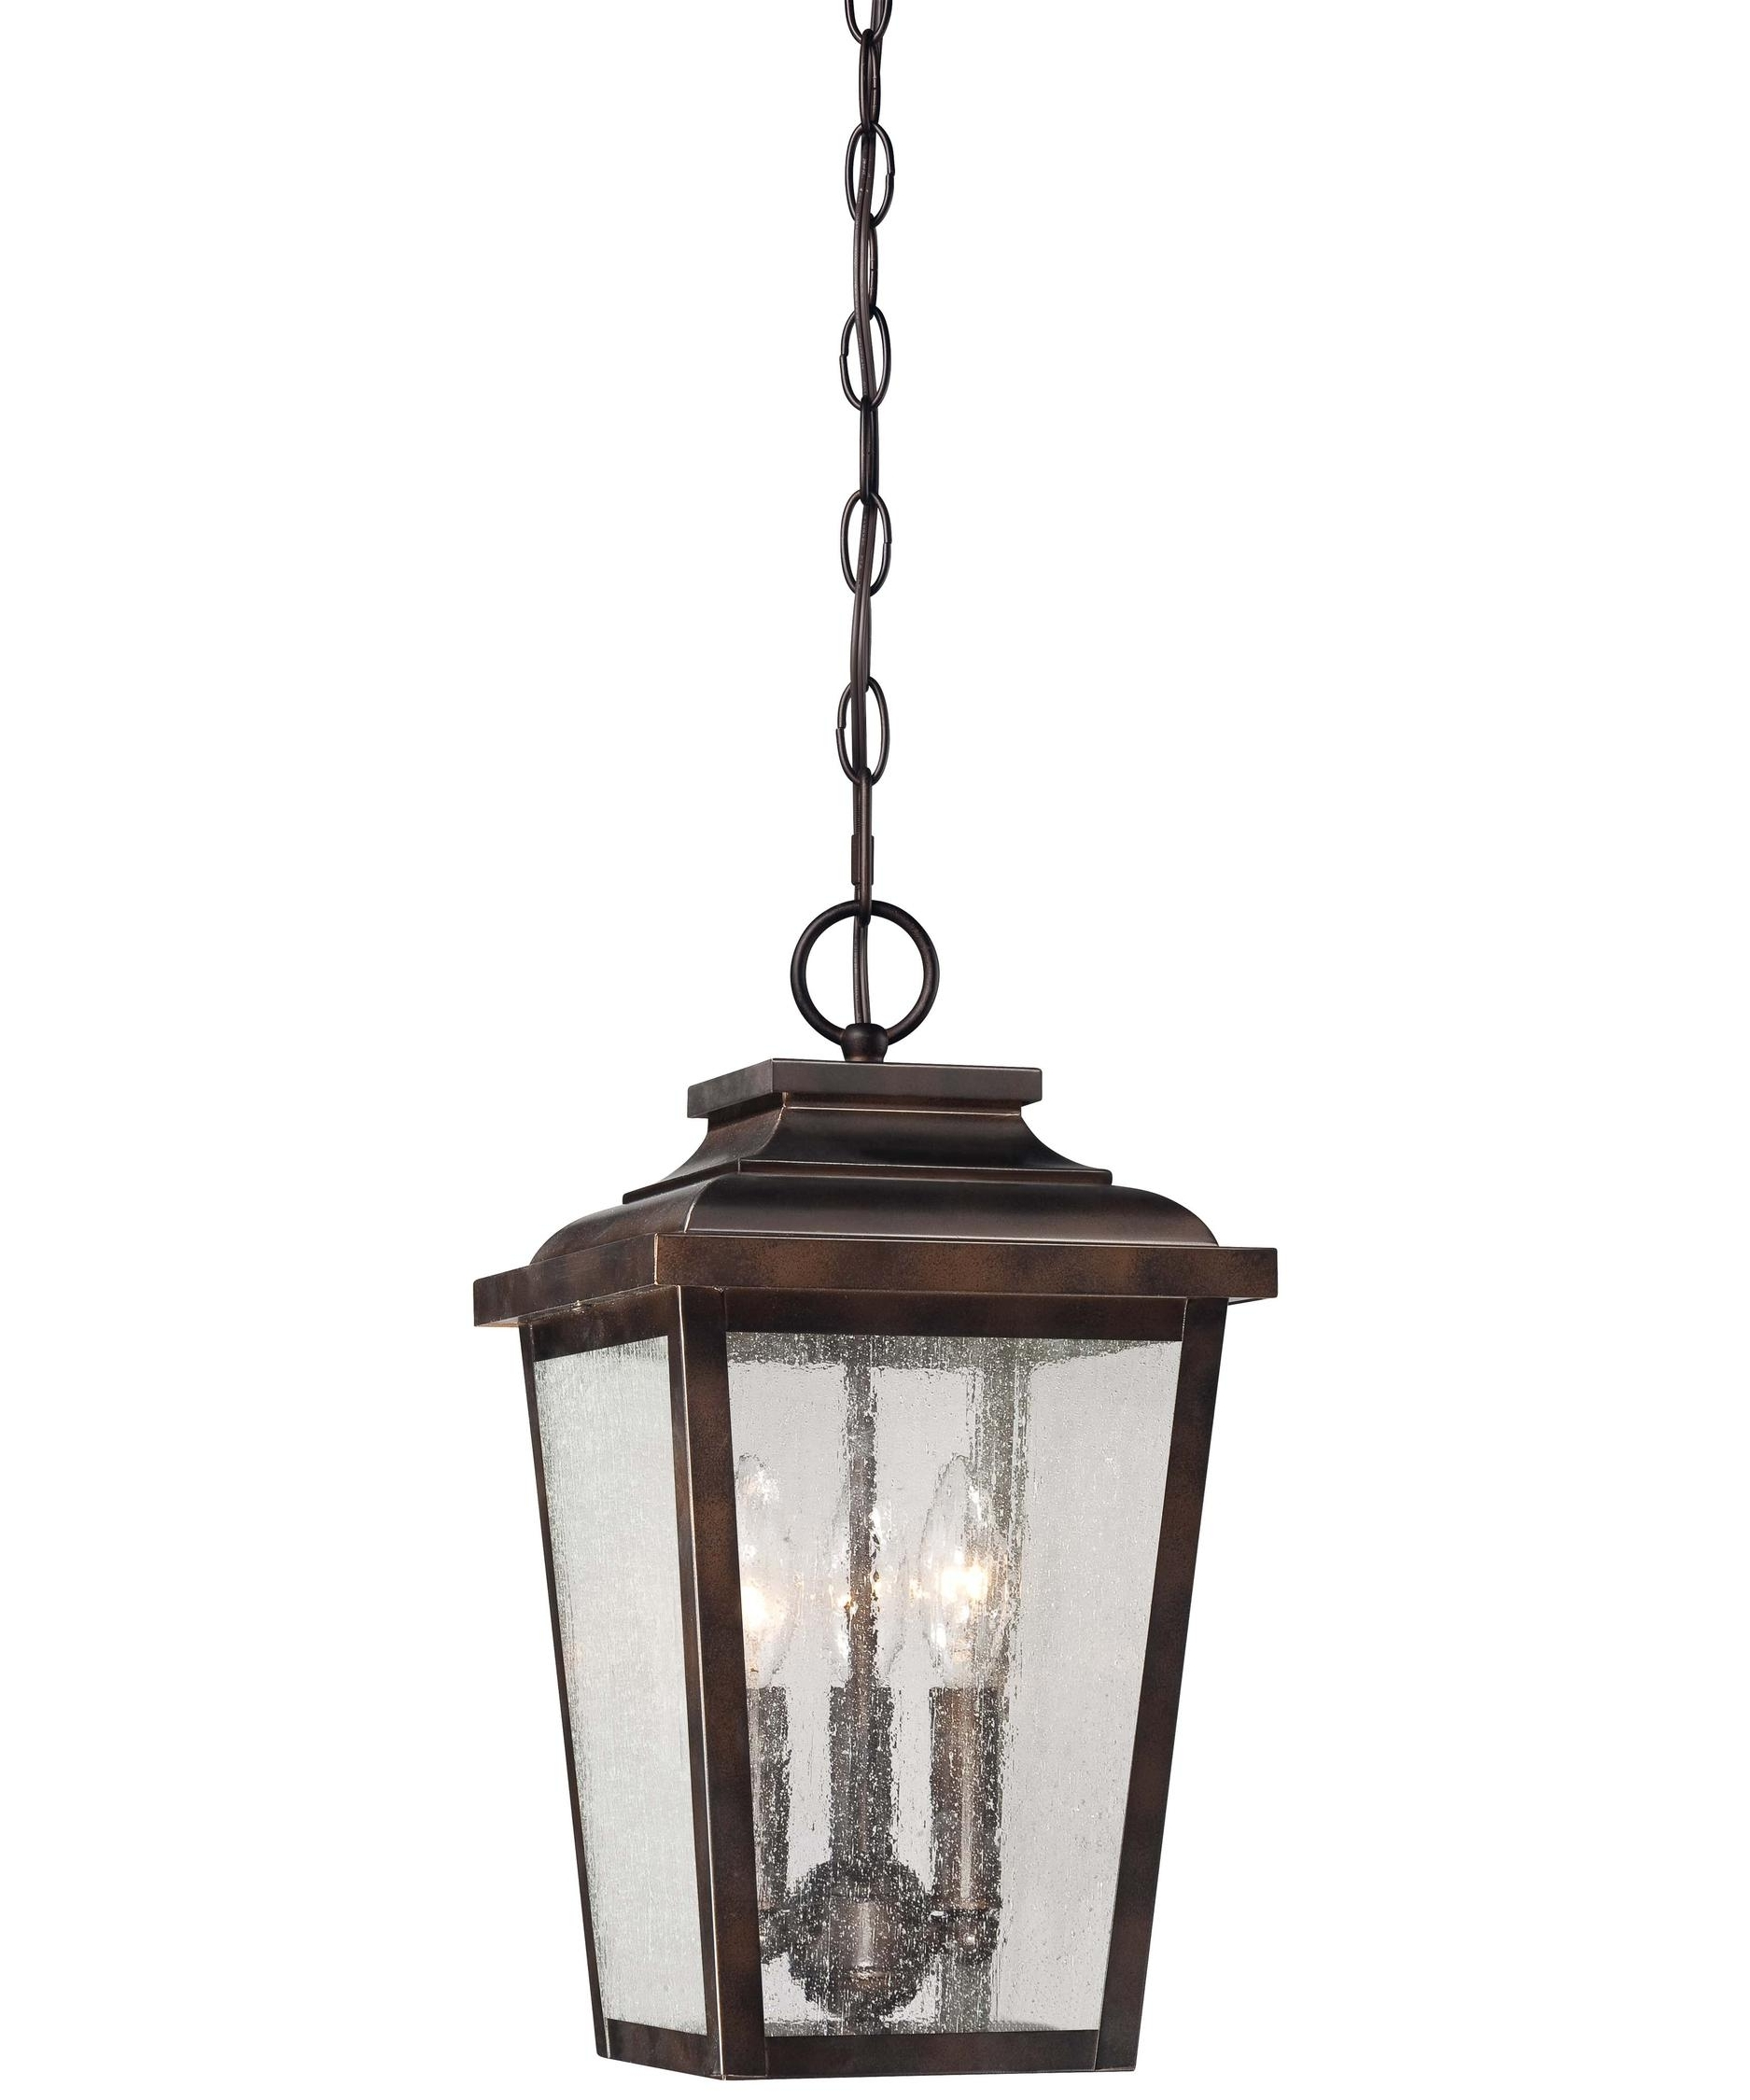 Famous Minka Lavery 72174 Irvington Manor 9 Inch Wide 3 Light Outdoor For Outdoor Iron Hanging Lights (View 4 of 20)